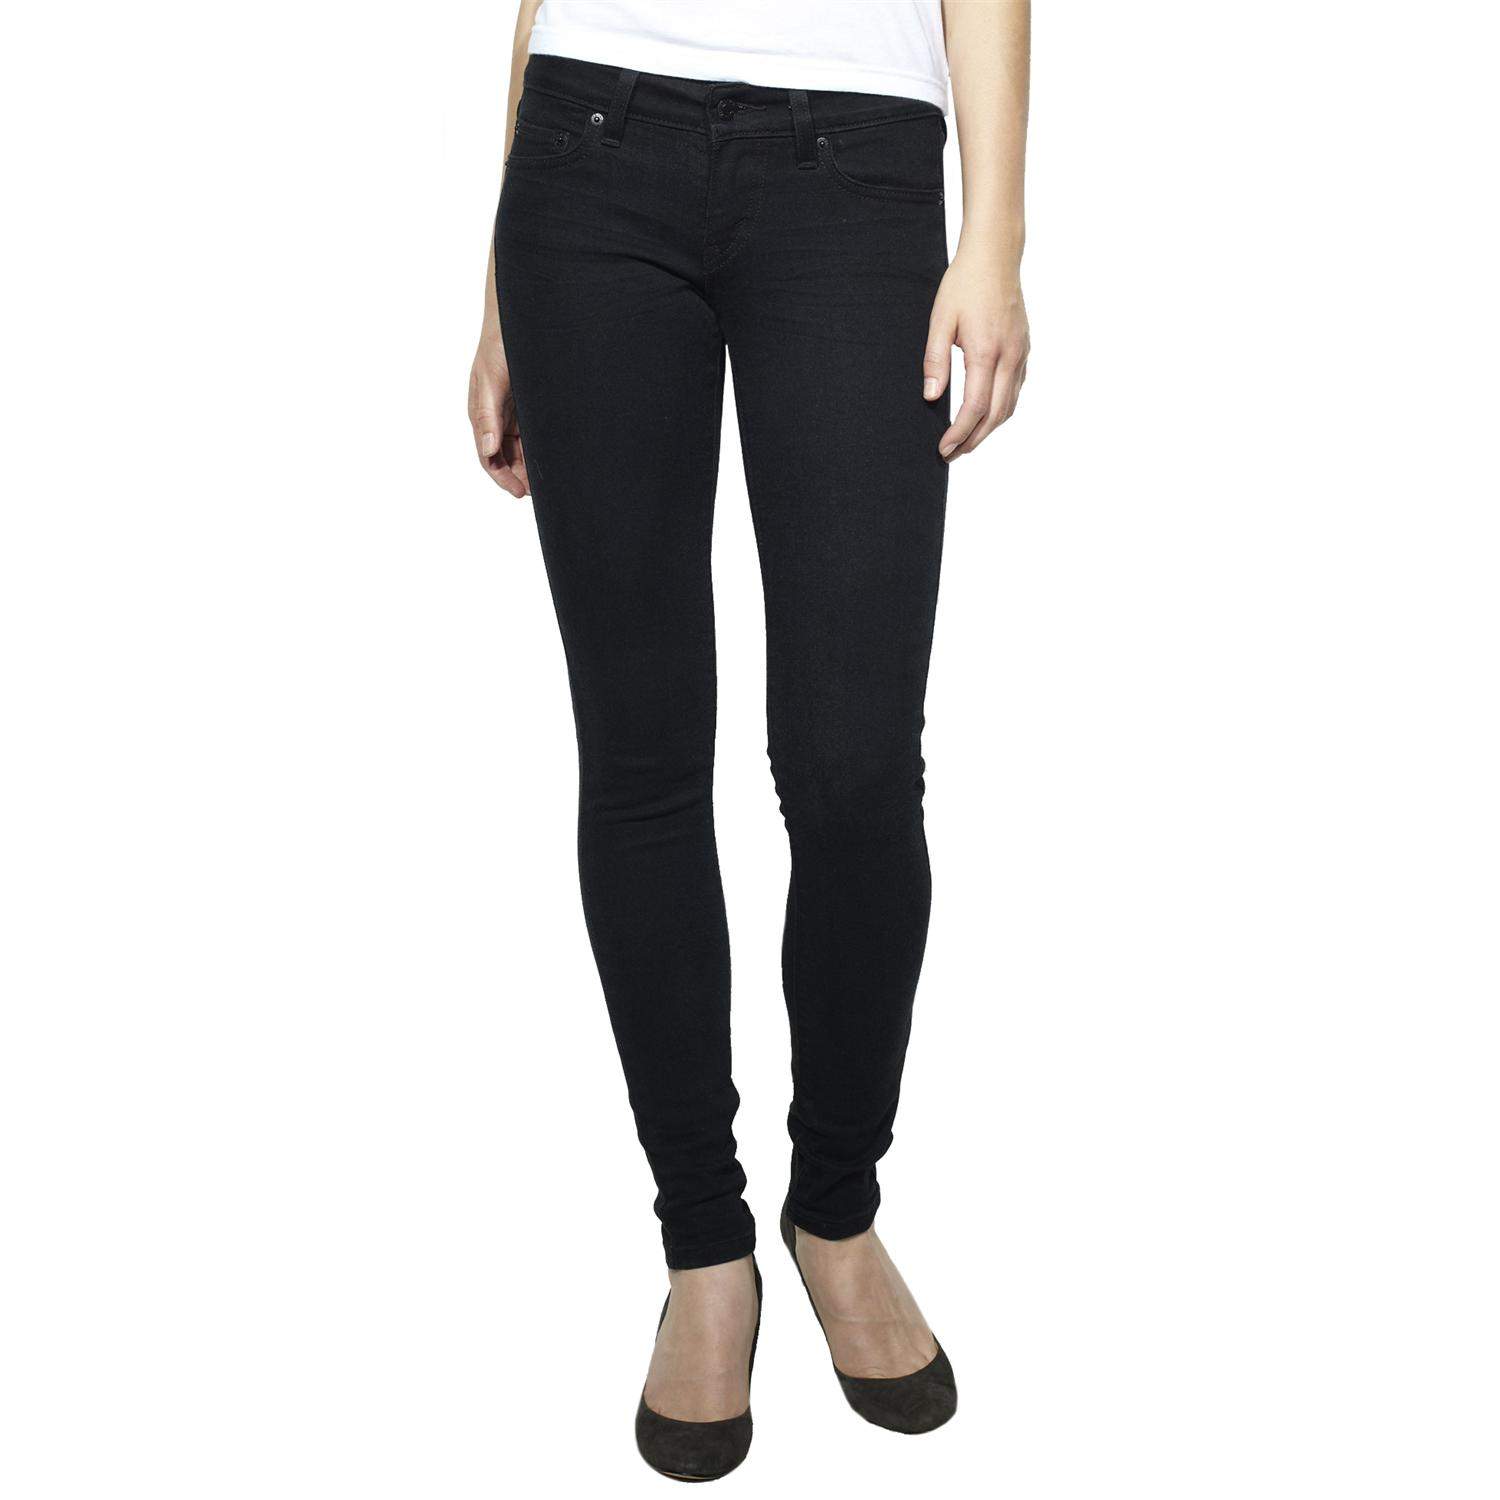 Free shipping BOTH ways on black levis jeans for women, from our vast selection of styles. Fast delivery, and 24/7/ real-person service with a smile. Click or call